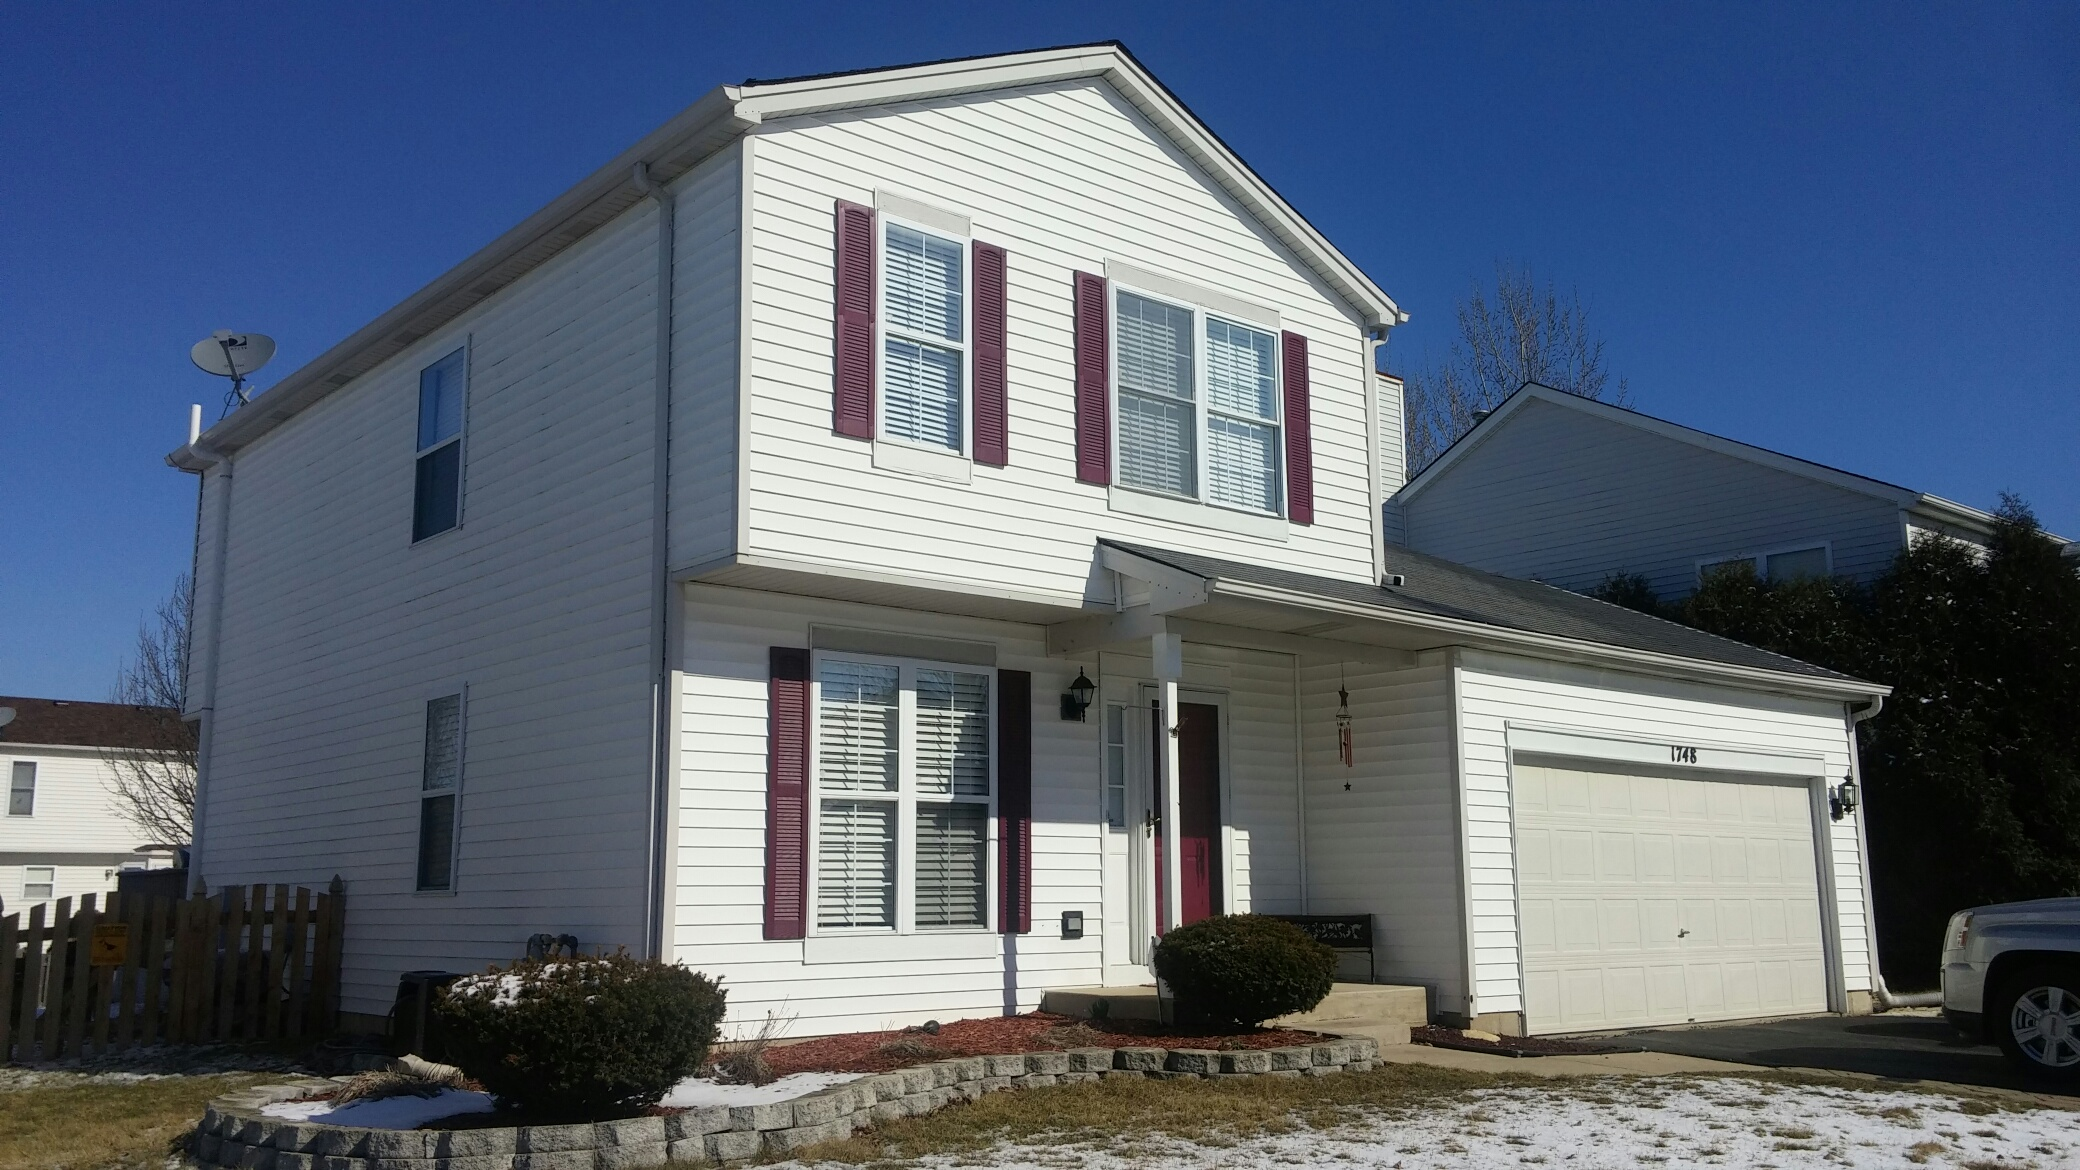 Romeoville IL 4 bedroom home w/ Plainfield 202 schools